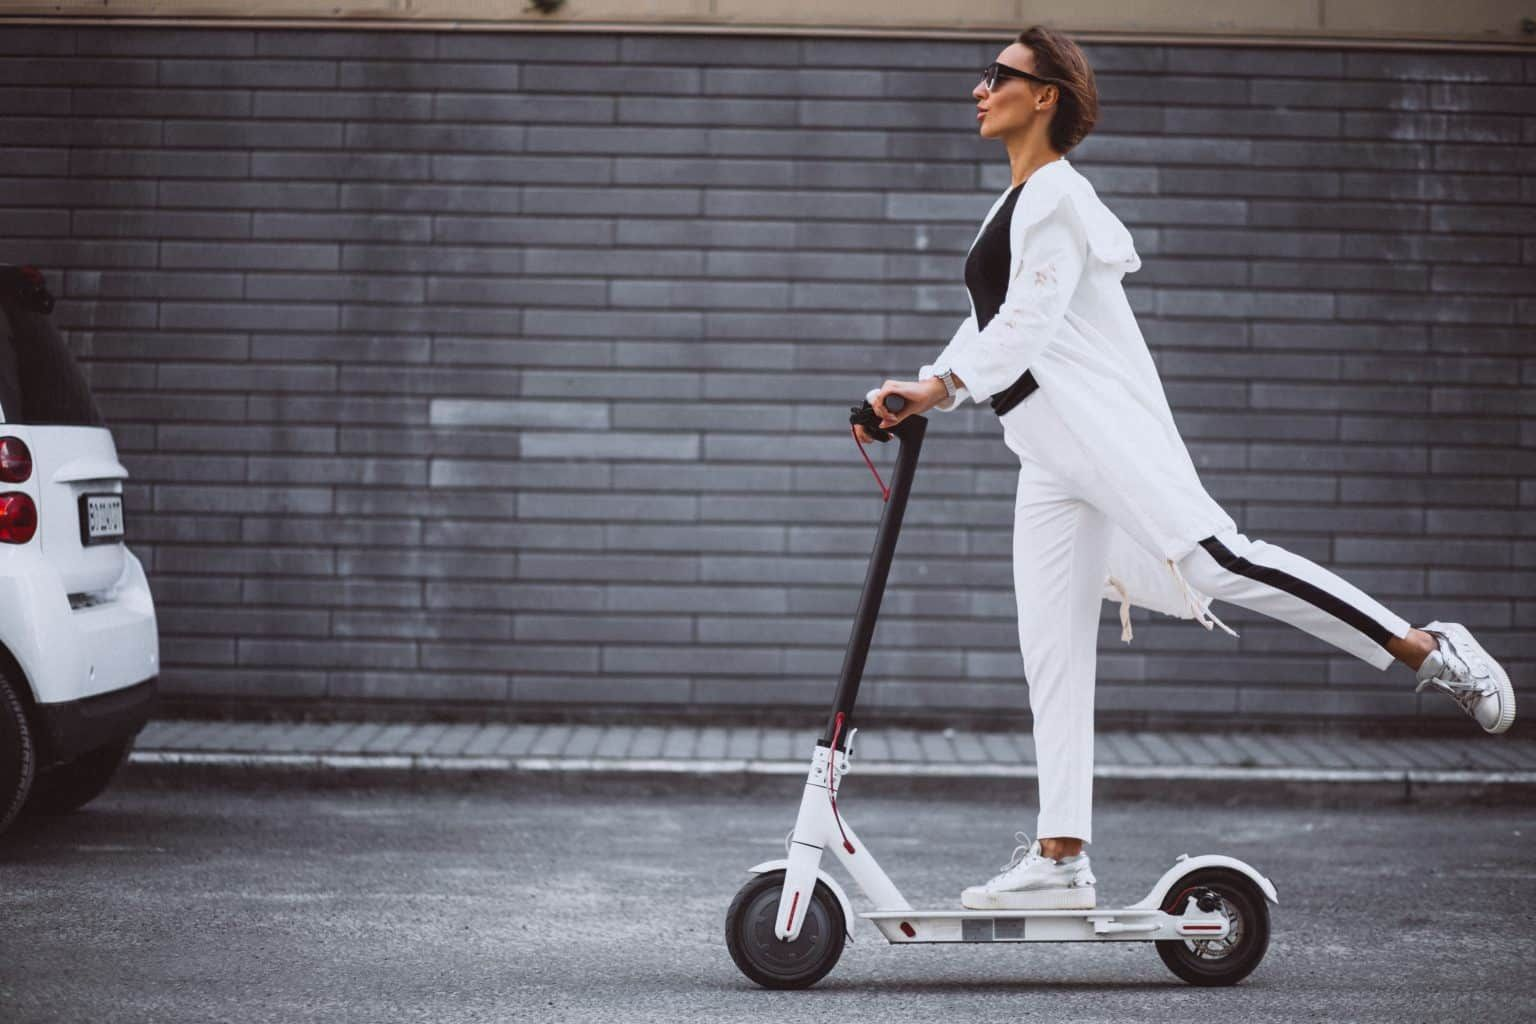 9 Best Foldable Electric Scooter For Adults In 2020 Reviews In